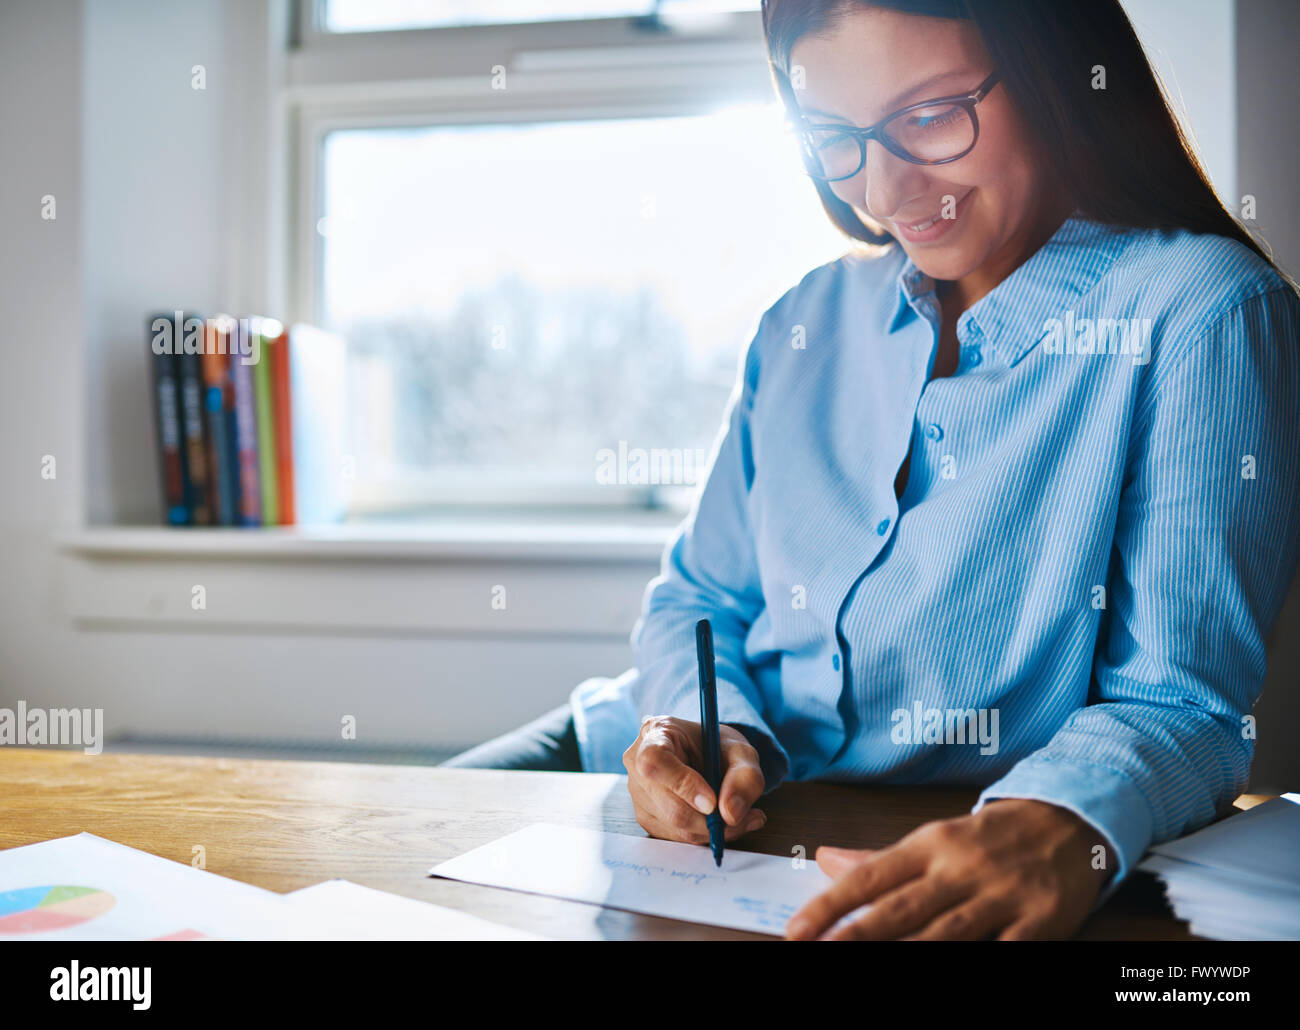 Selective focus close up on happy entrepreneur female wearing glasses and blue shirt at desk writing on form next Stock Photo